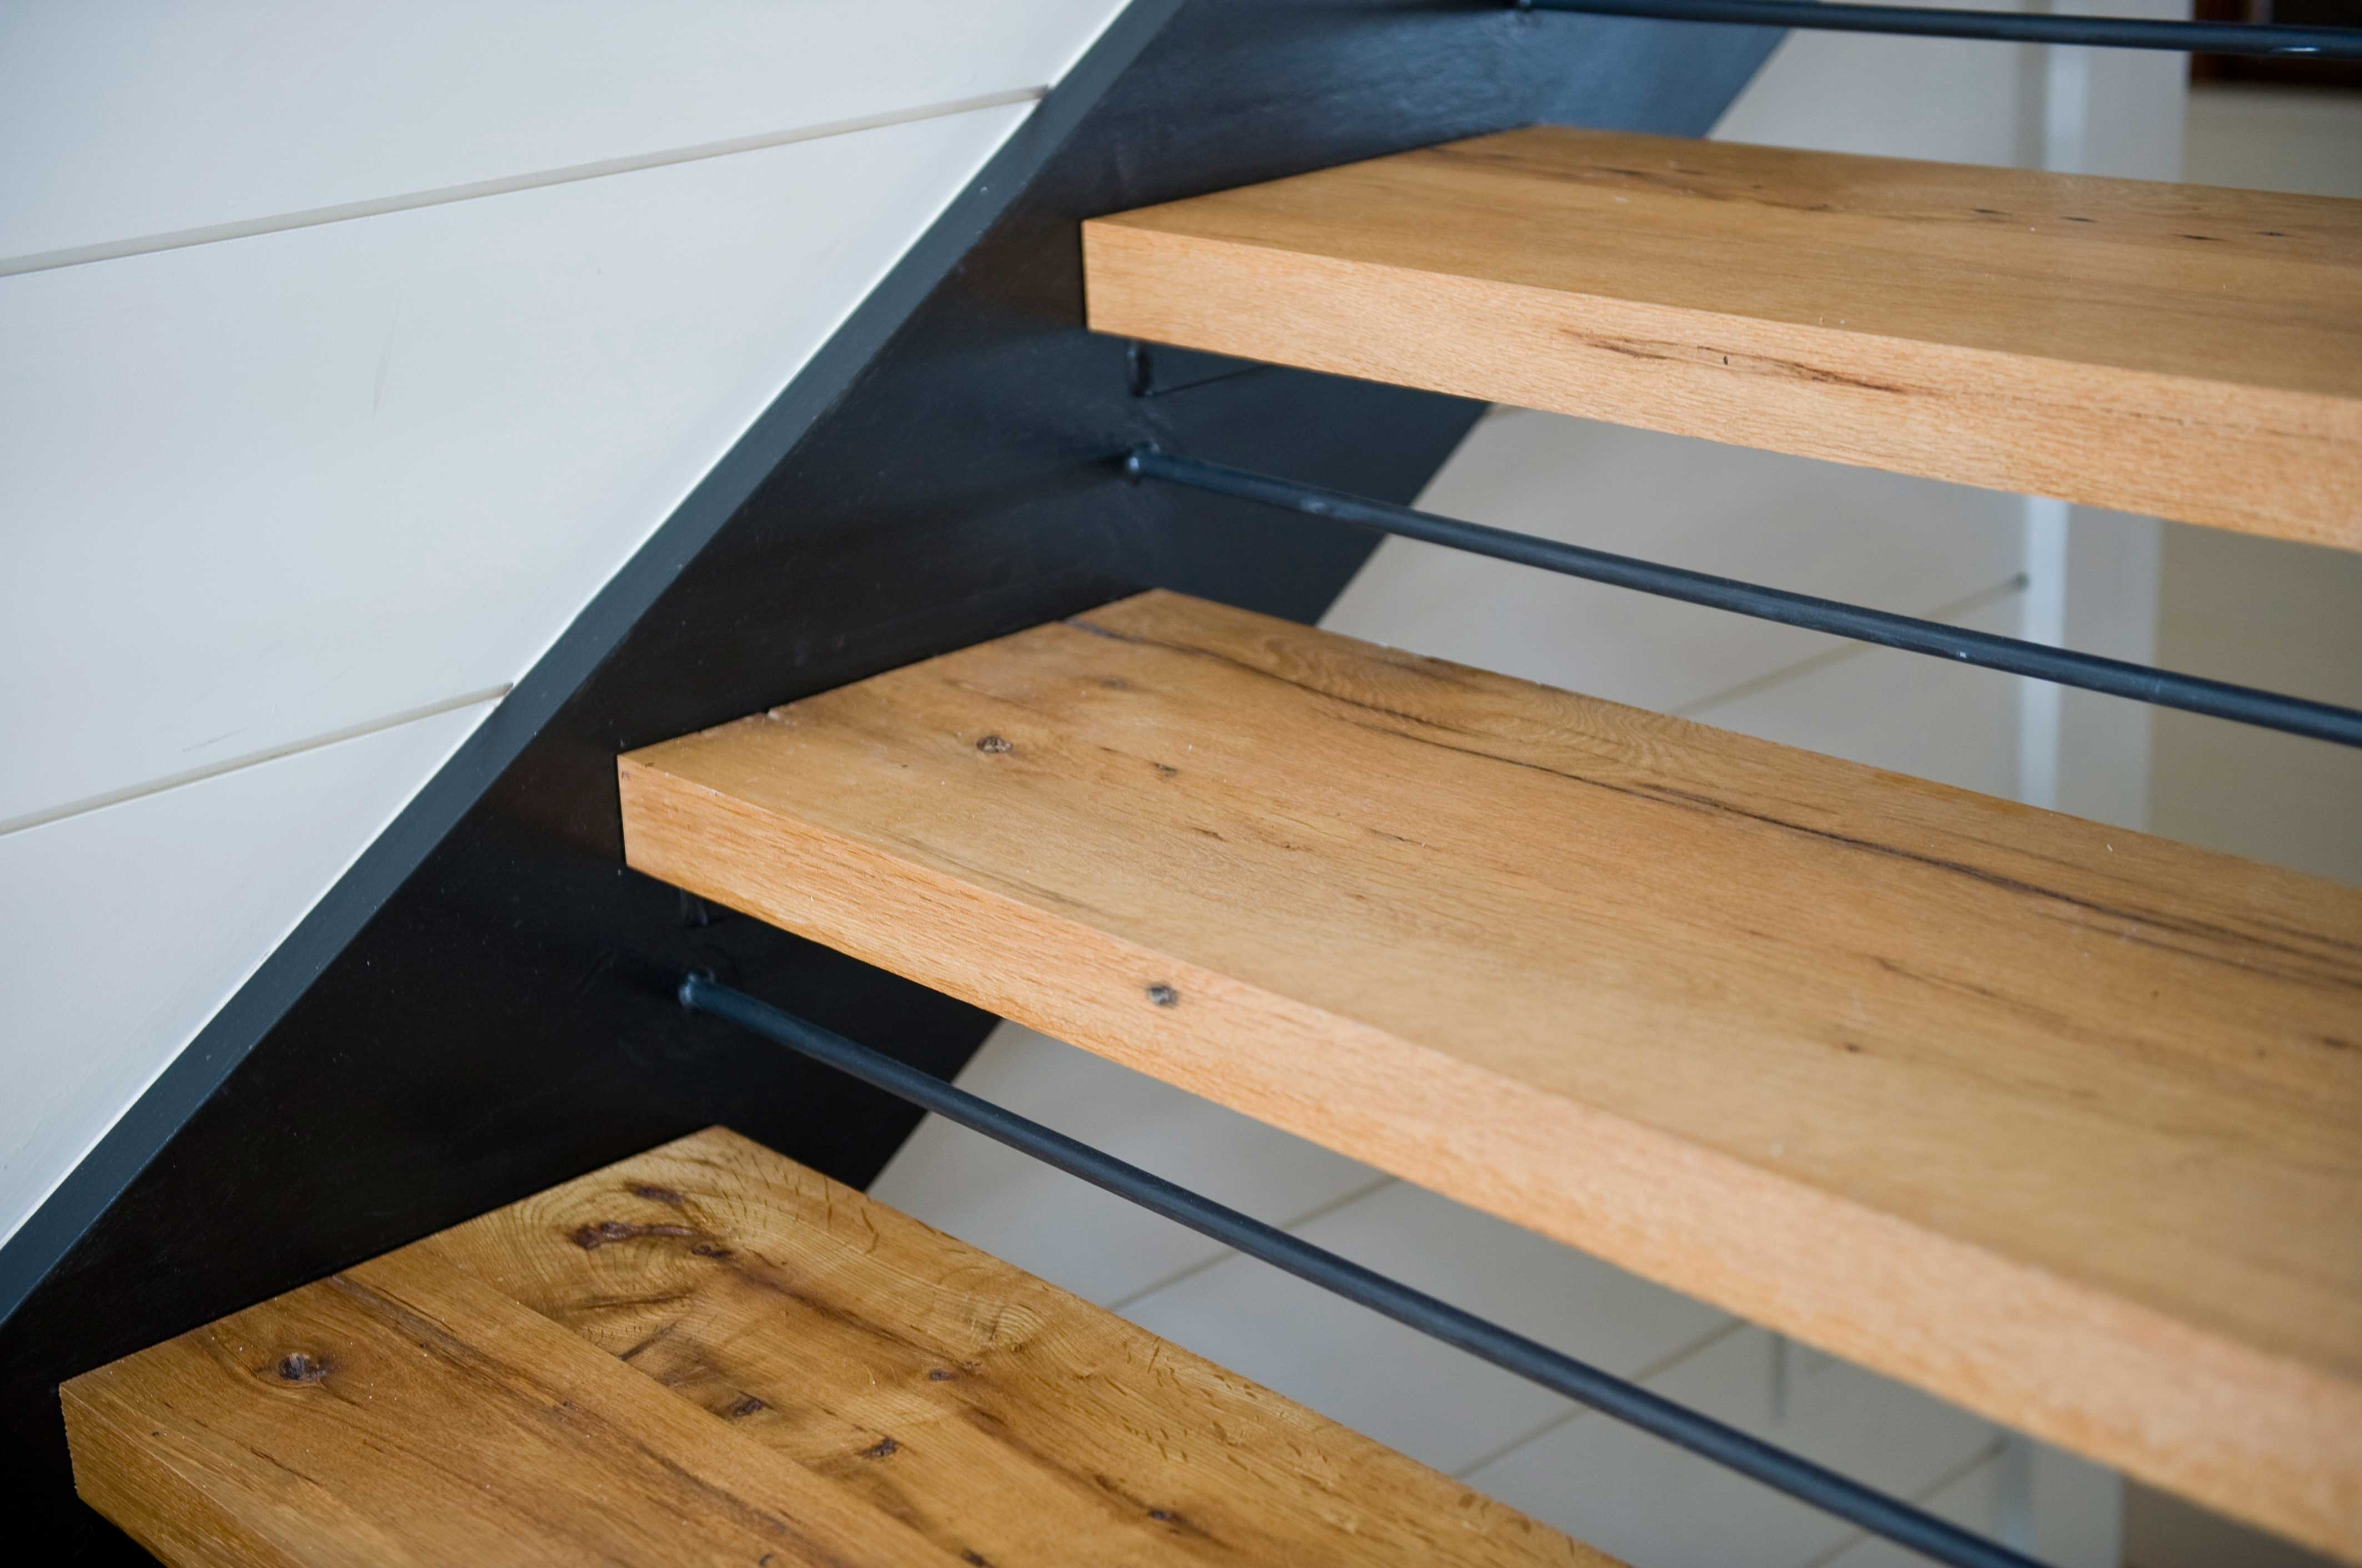 Longleaf Lumber Custom Reclaimed Wood Stair Treads Mouldings Pertaining To Contemporary Stair Treads (Image 11 of 15)